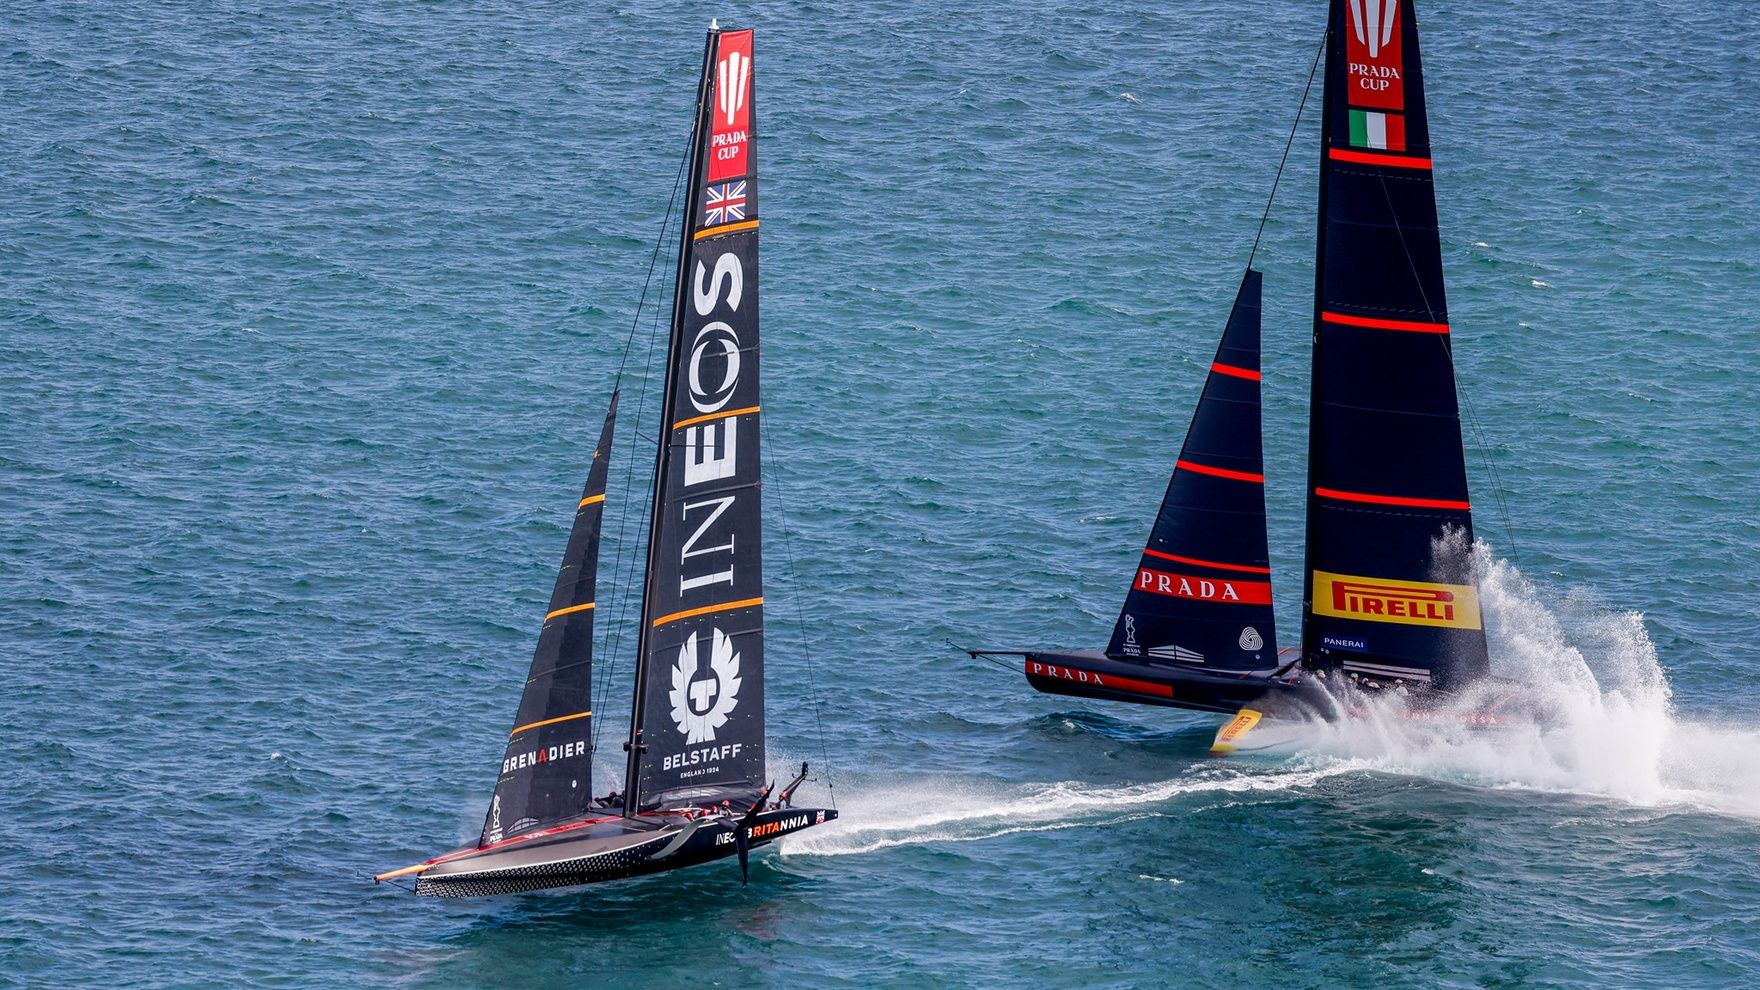 The America's Cup 2021